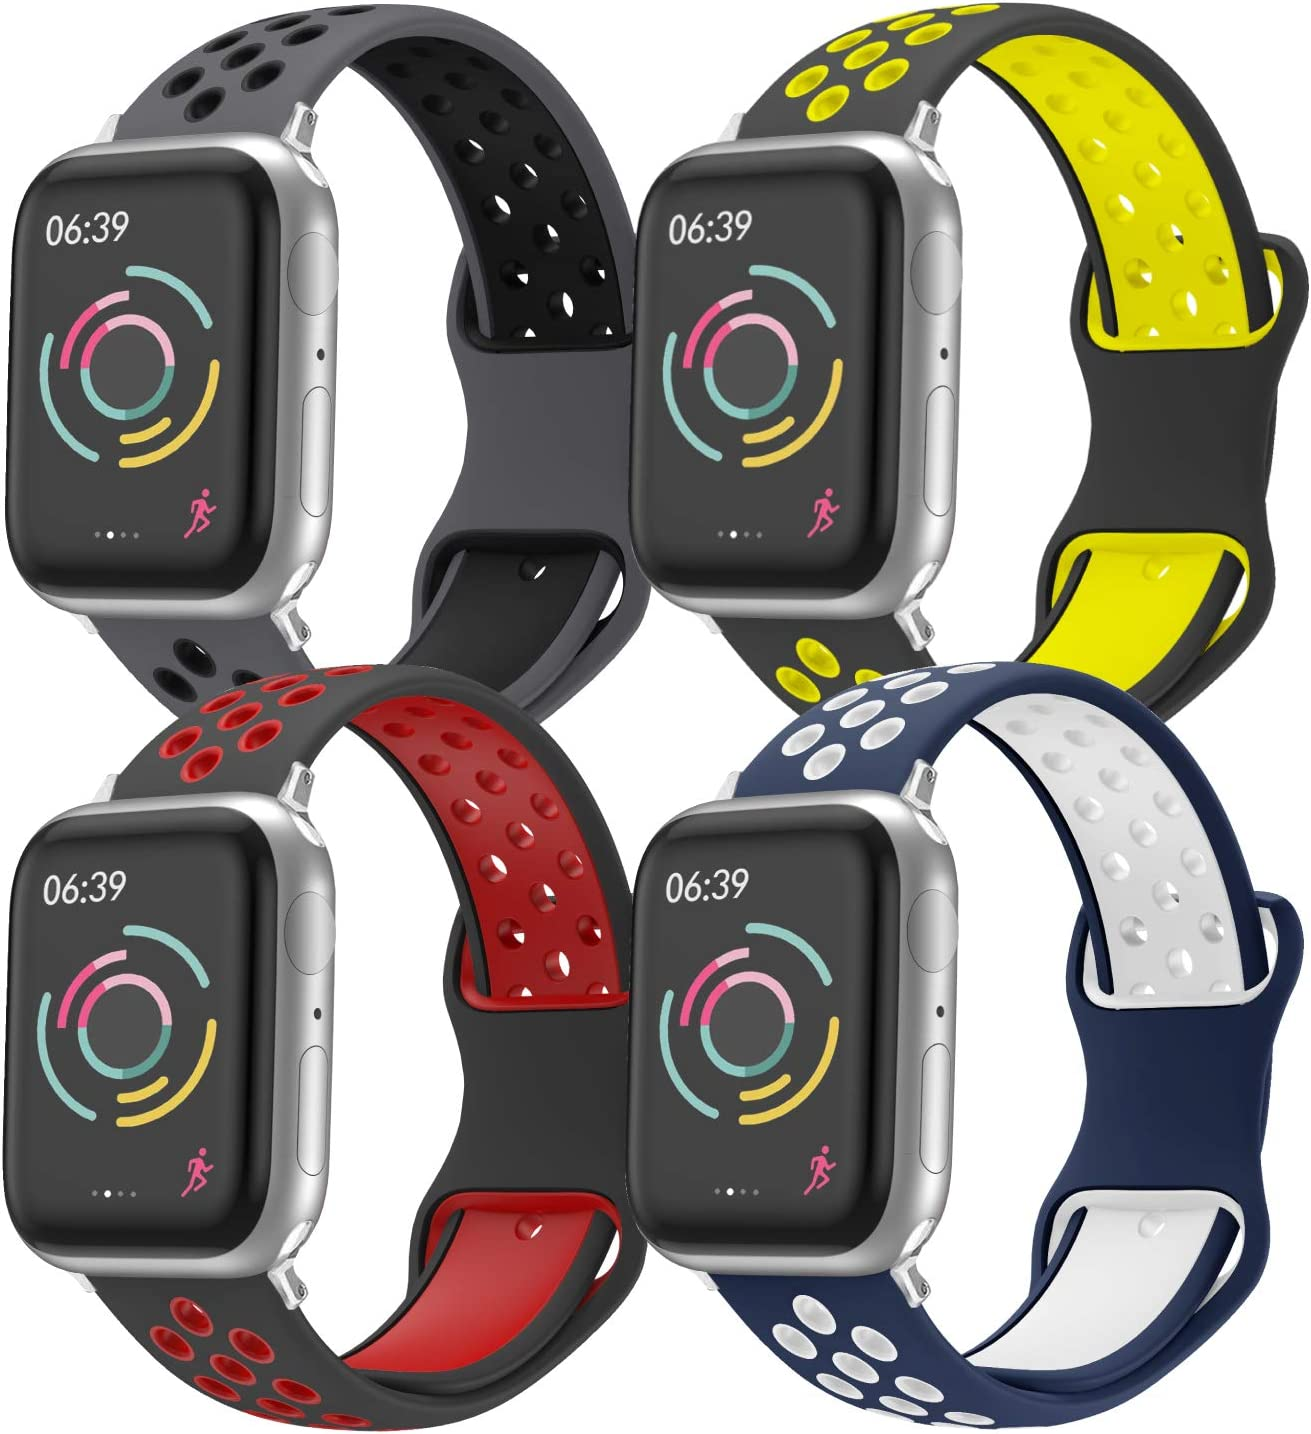 Correa de Reloj Compatible con Apple Watch 44 mm 42 mm 40 mm 38 mm, Correa de Repuesto de Silicona Suave y Agradable para la Piel, Compatible con la Serie iWatch 5/4/3/2/1